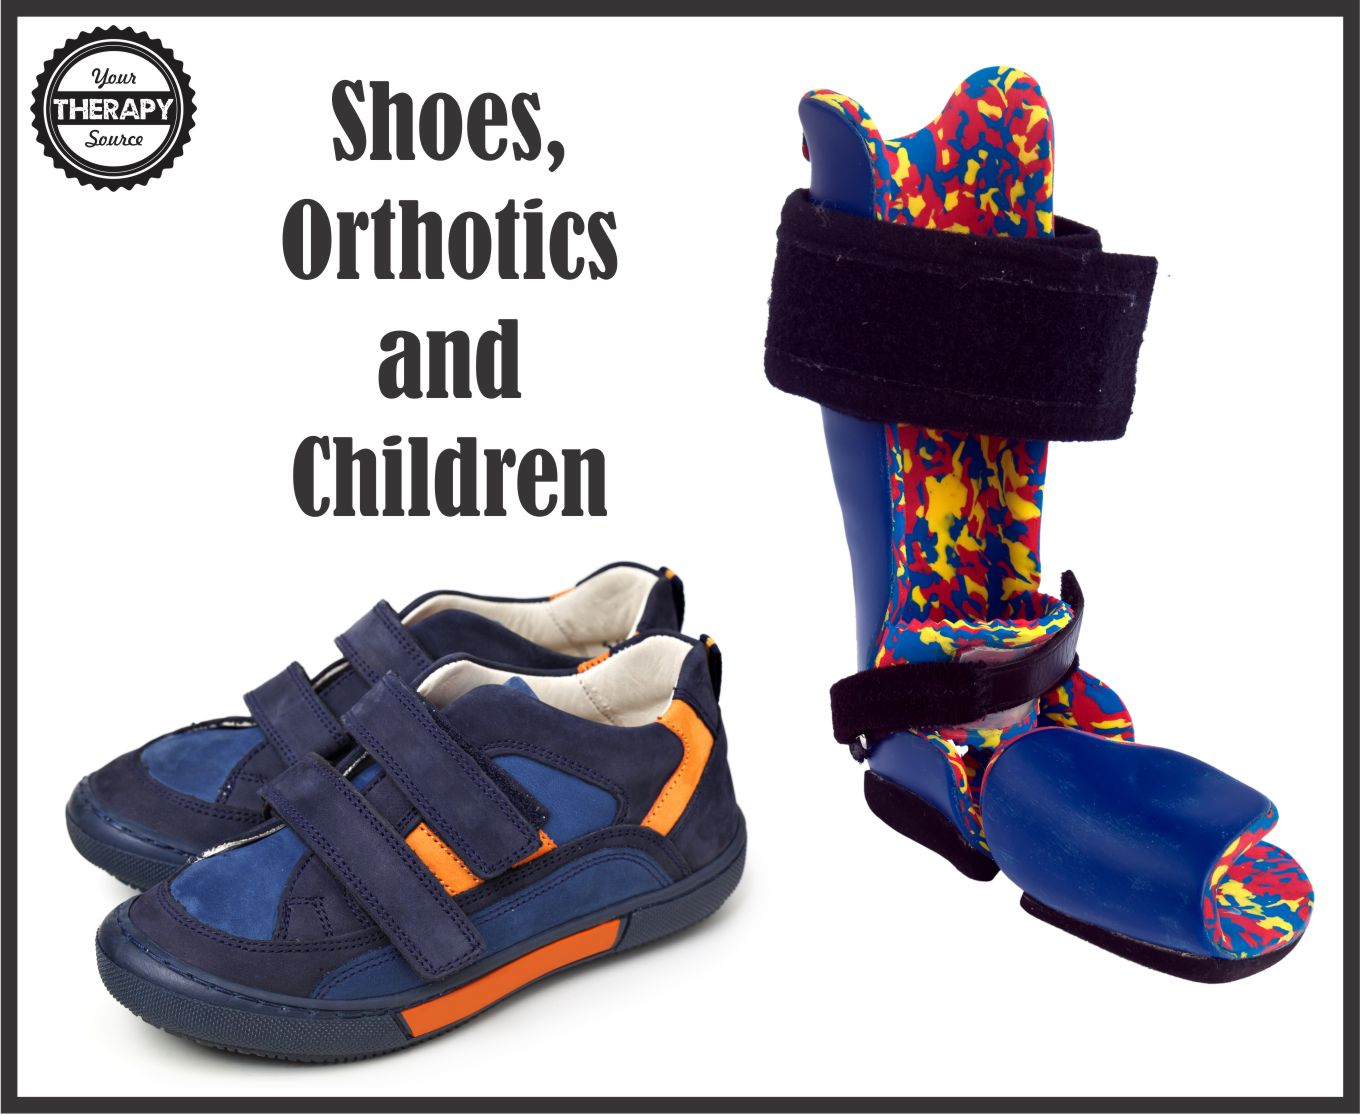 Shoes, Orthotics and Children - Your